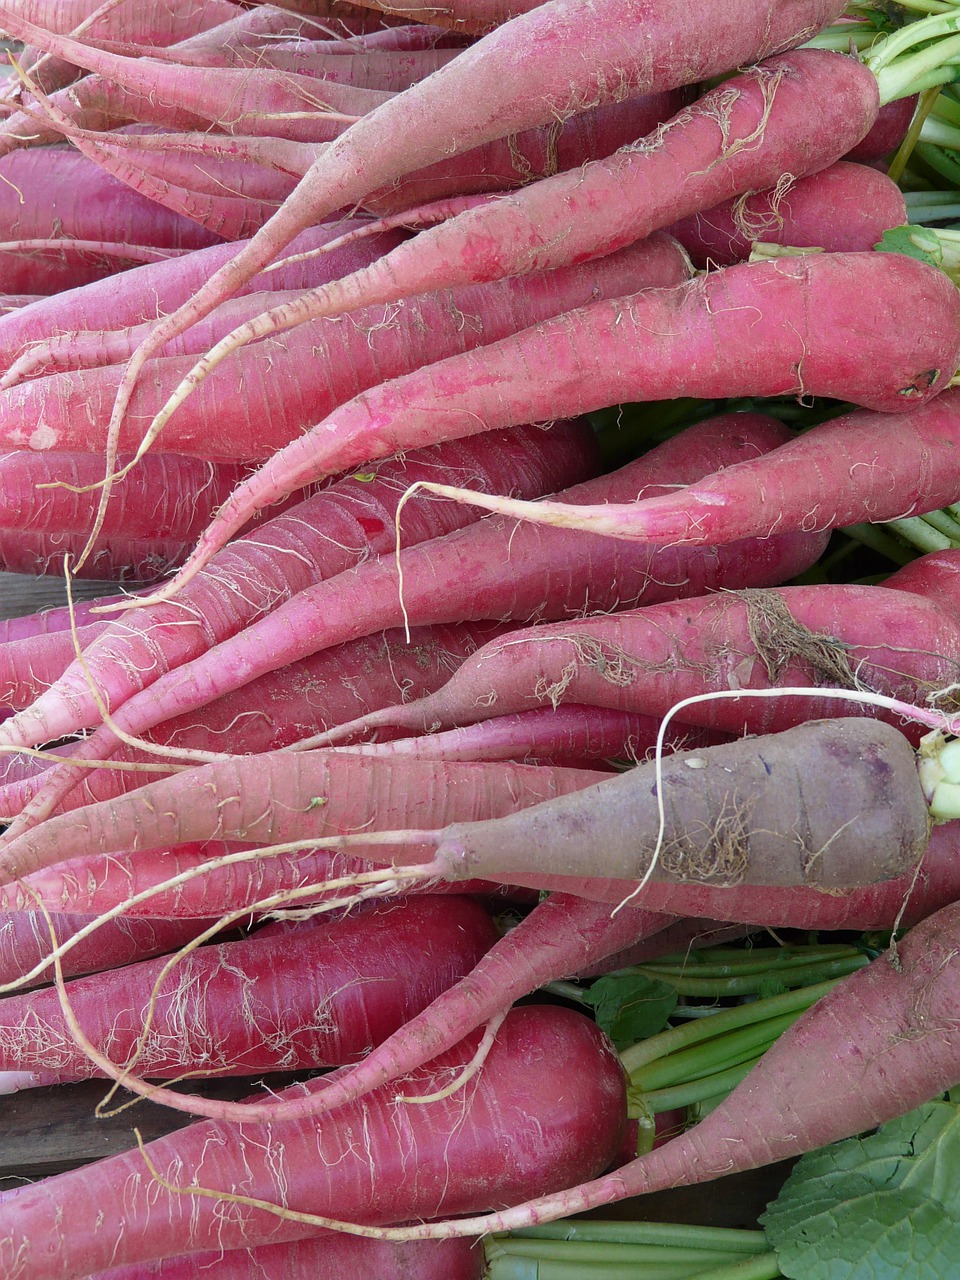 red radish radish vegetables free photo